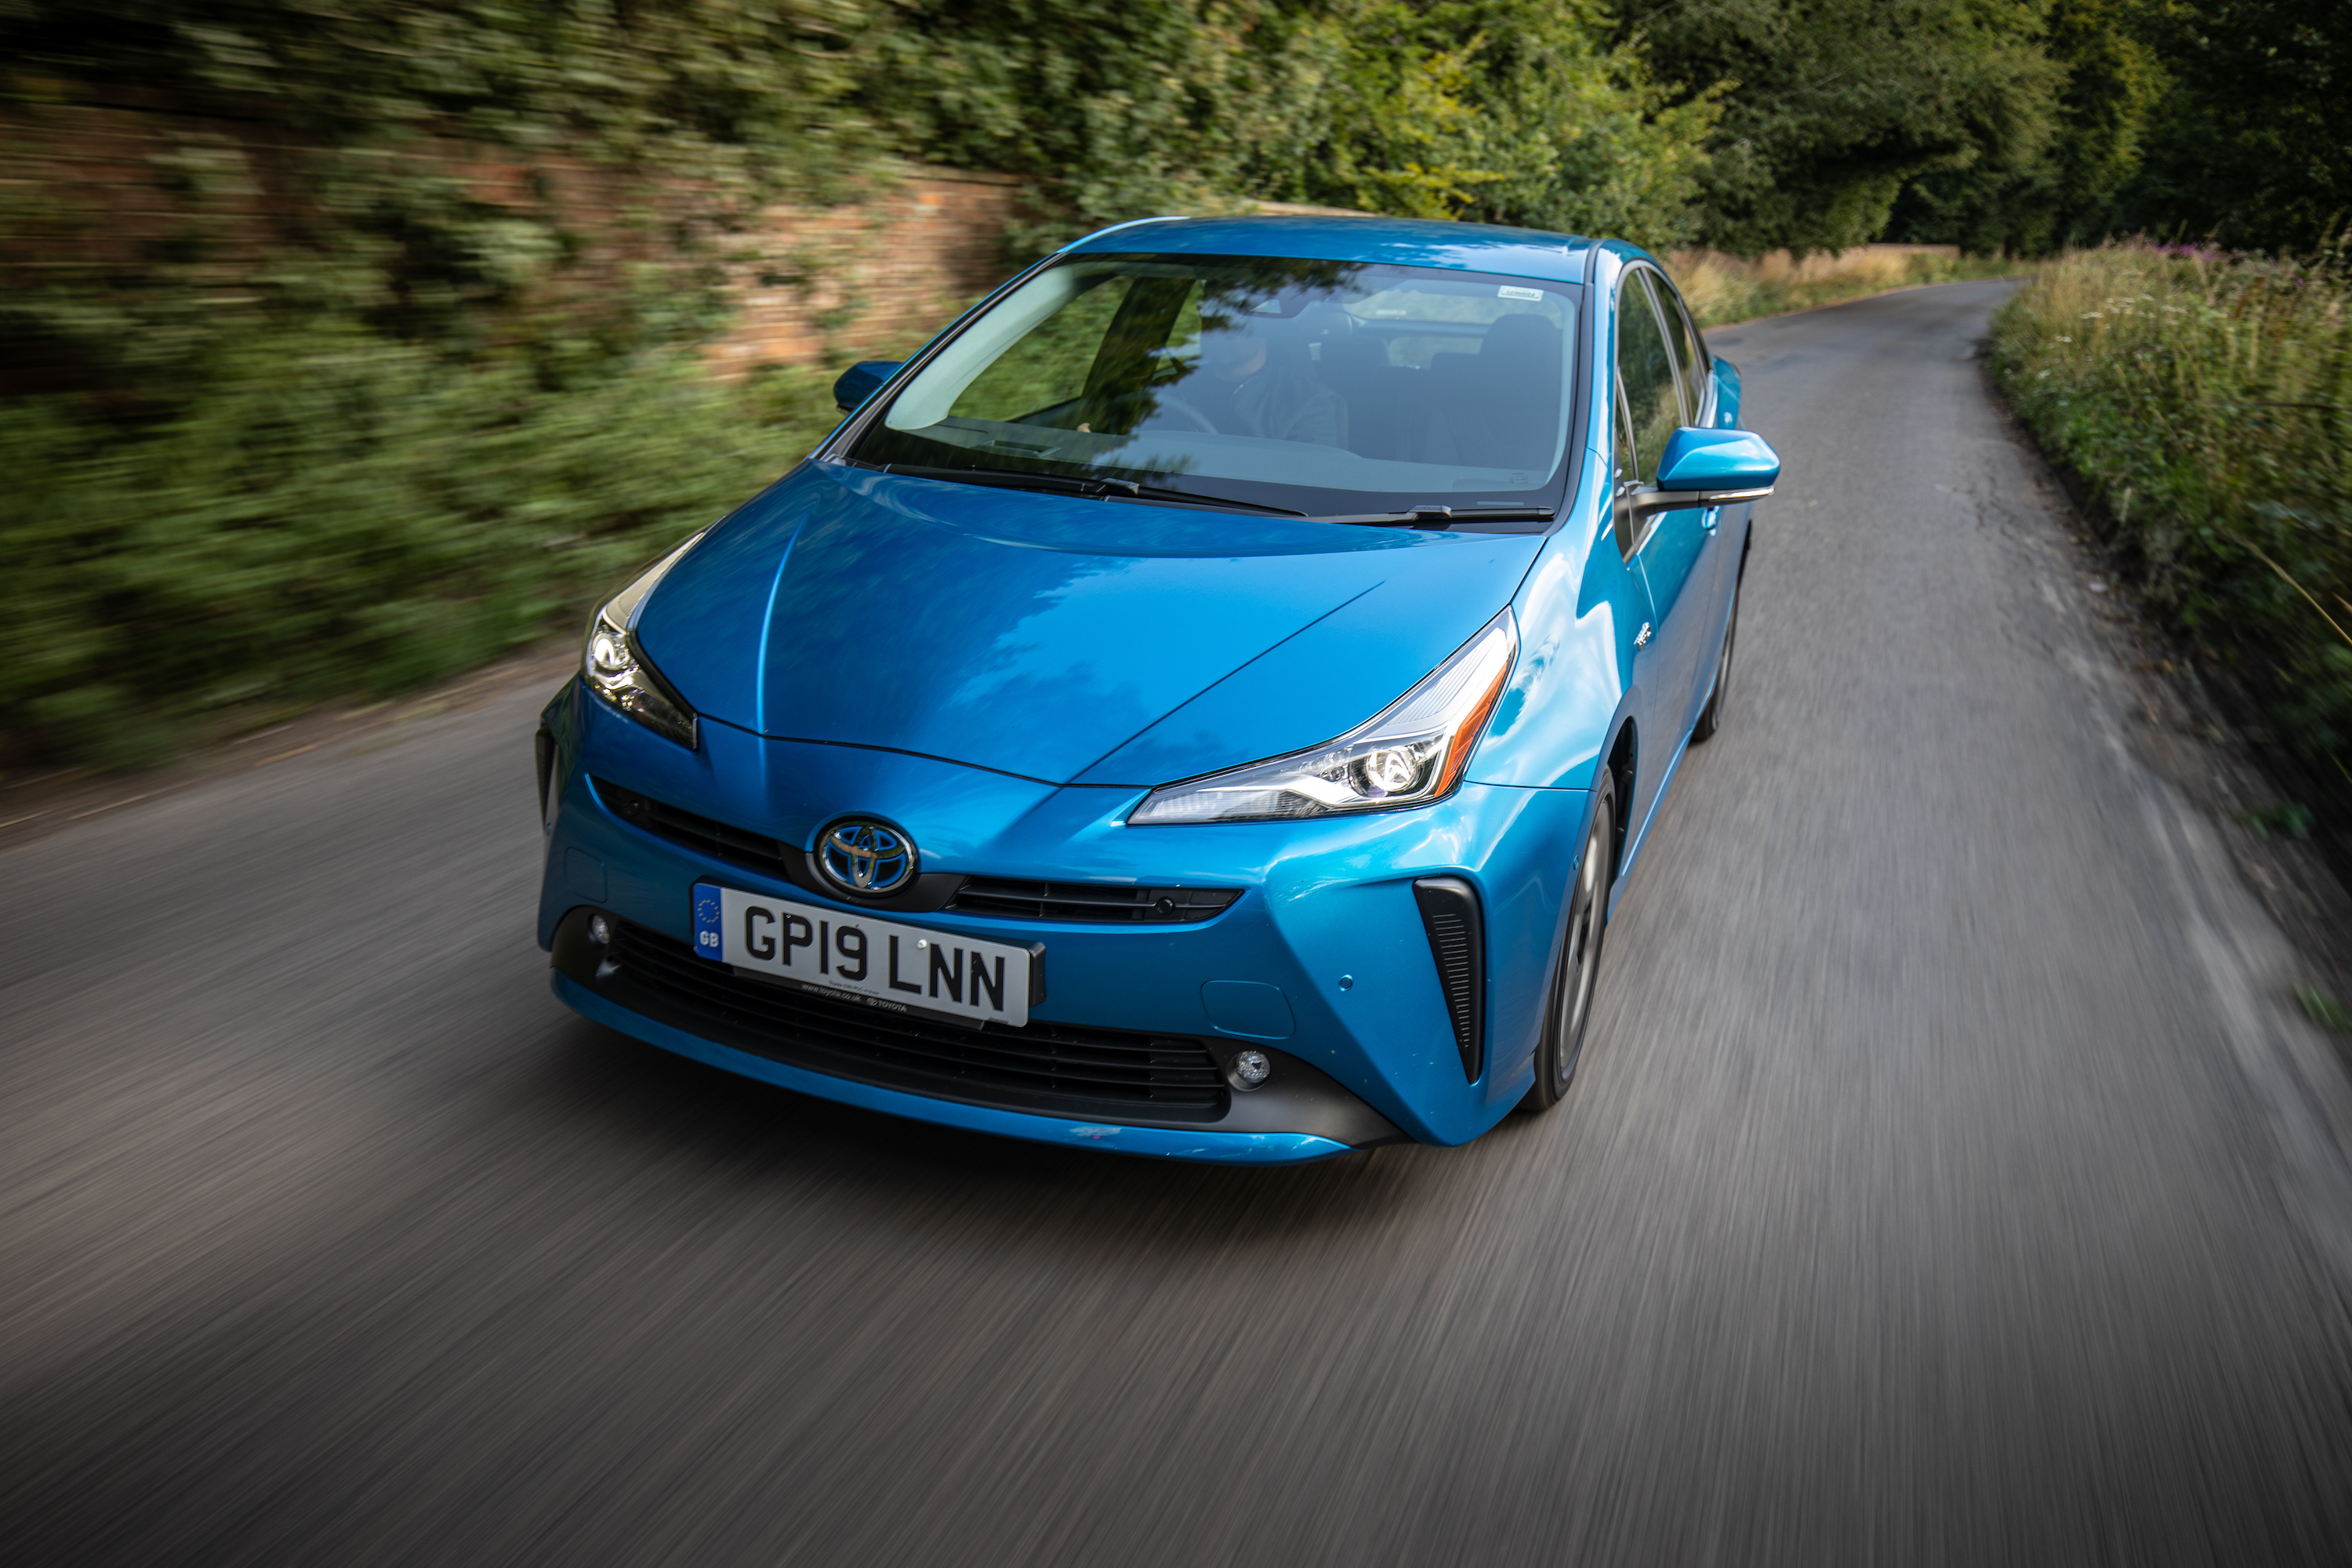 To Prius has been a go-to hybrid option for many years